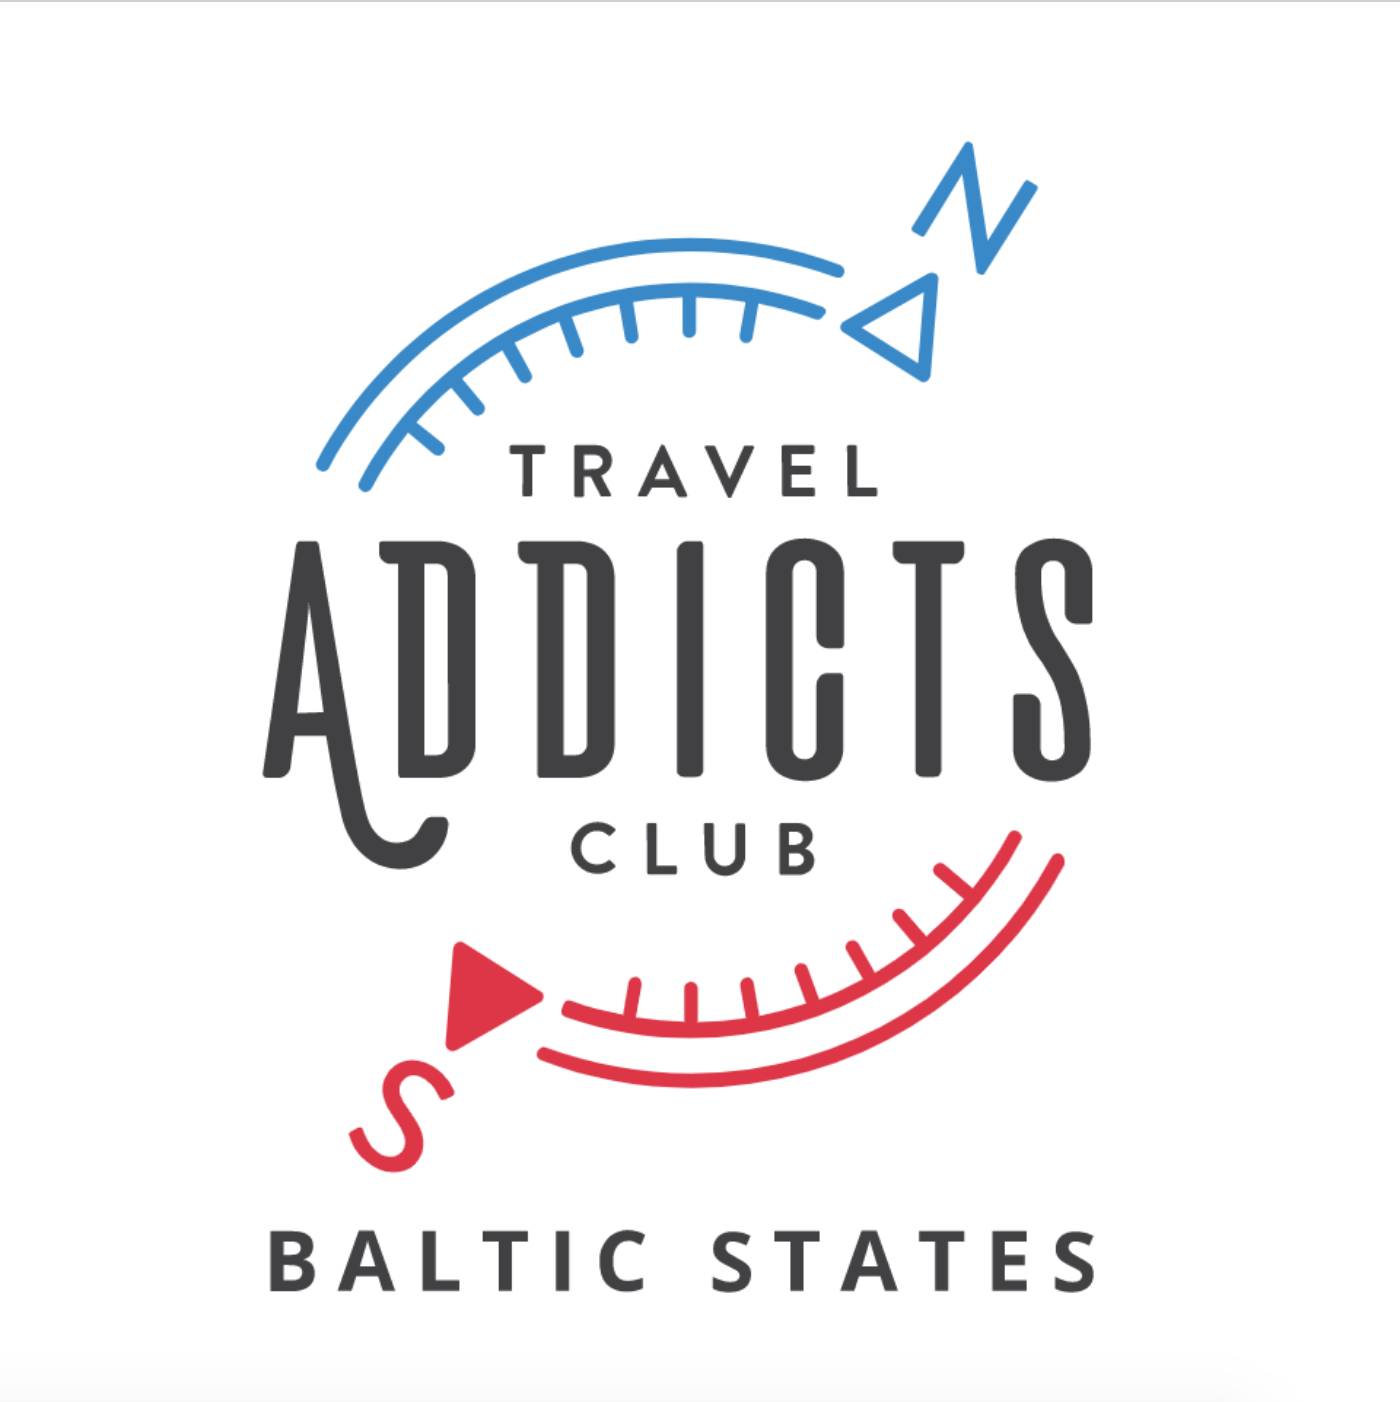 Travel Addicts Club